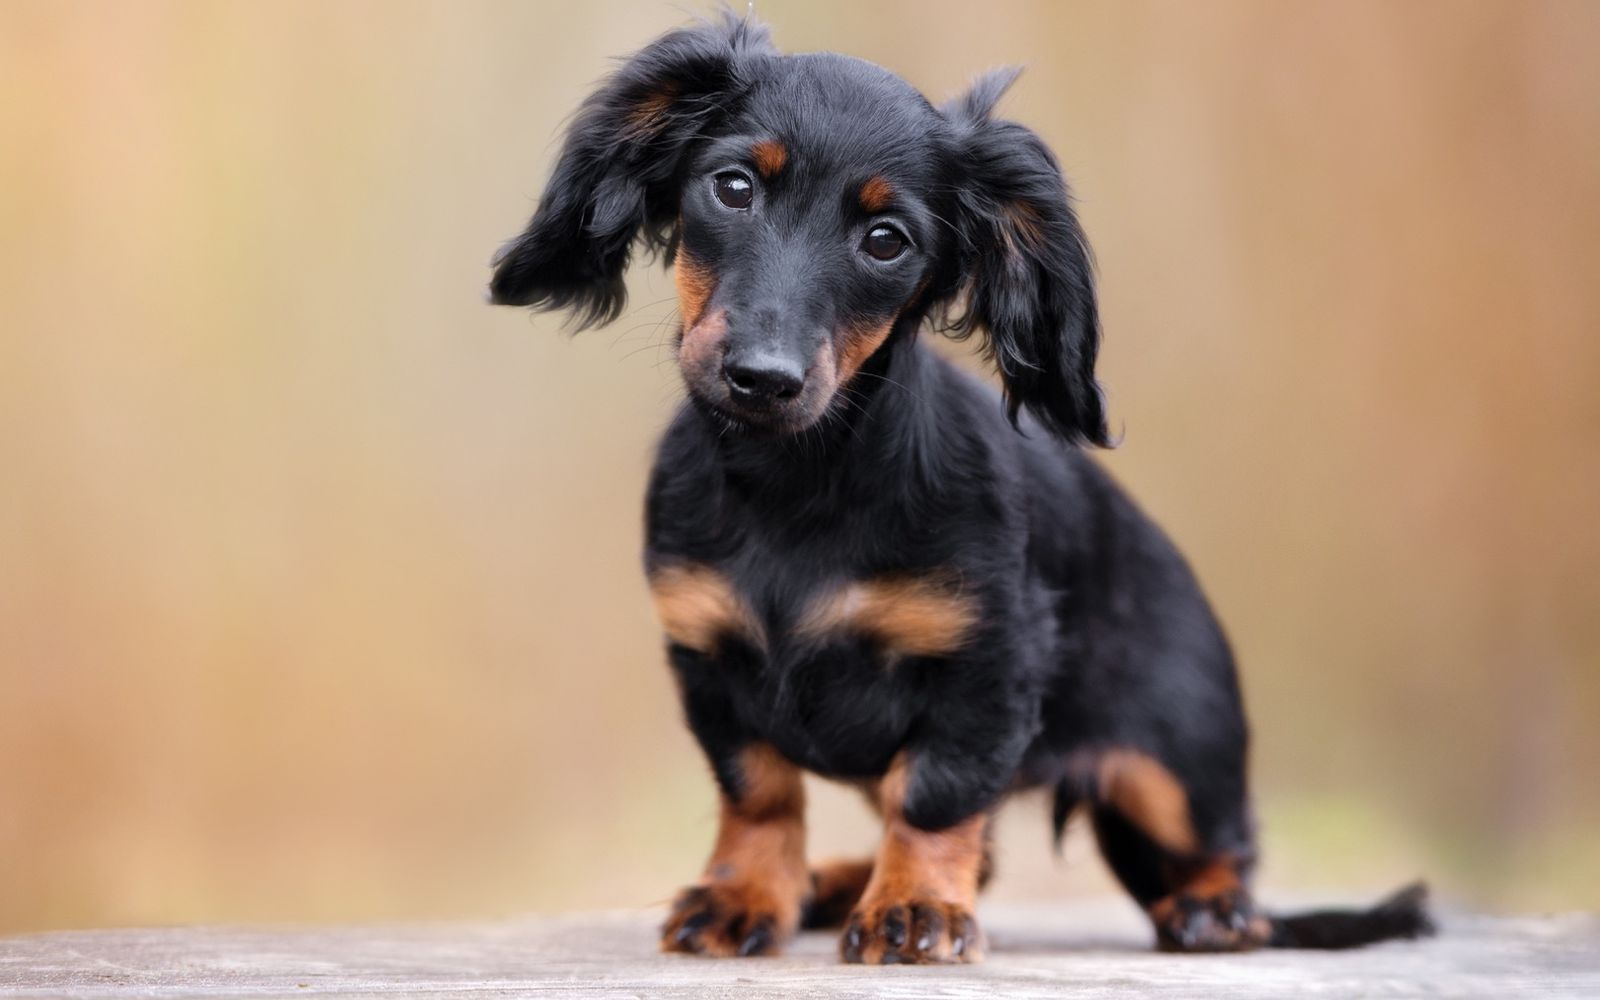 Dachshund (Long Haired) - Puppy